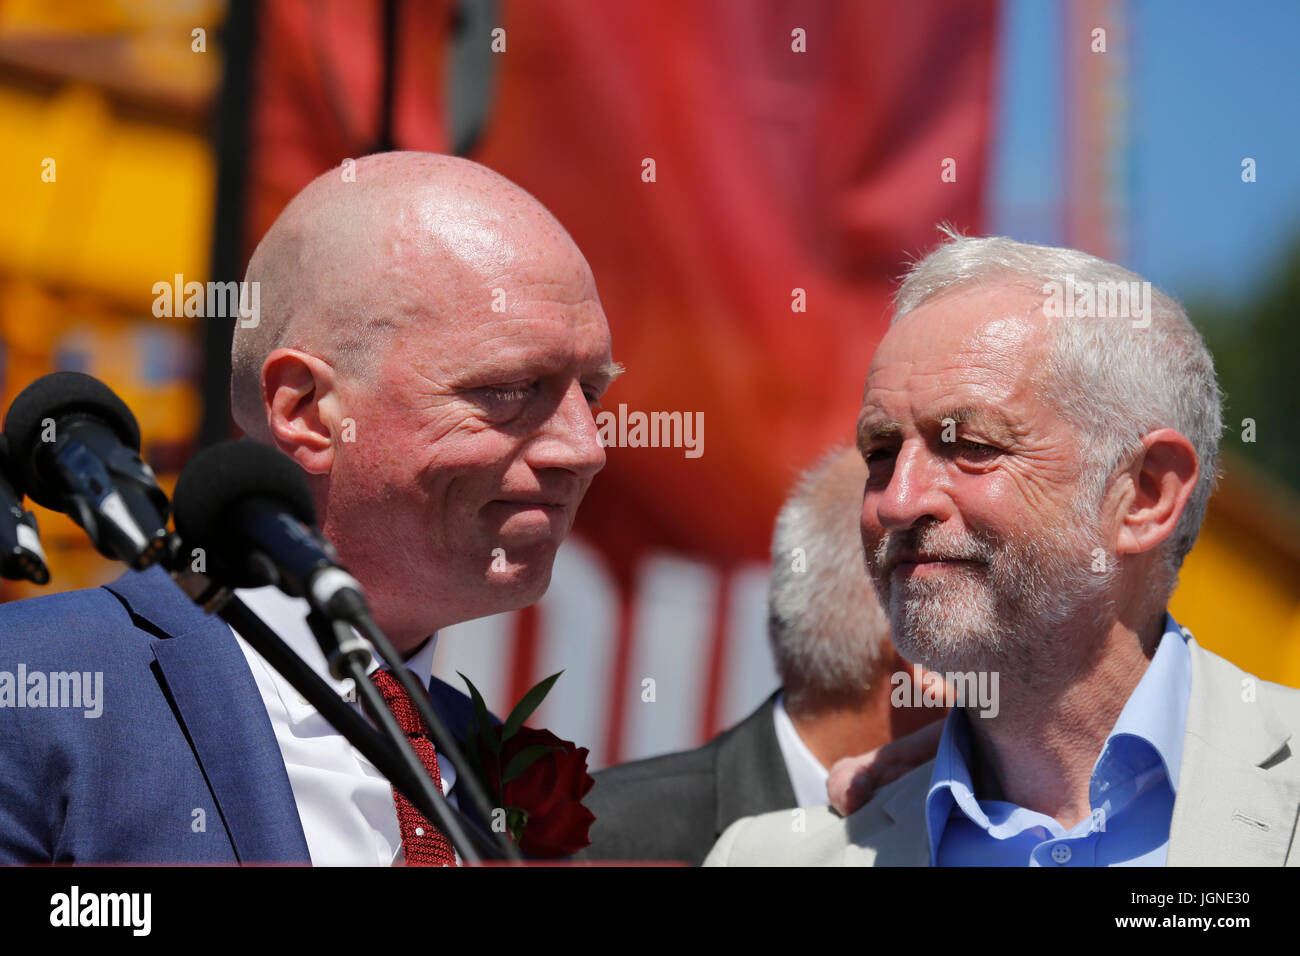 Durham, UK. 08th July, 2017. Matt Wrack, of the Fire Brigades Union, is consoled by Jeremy Corbyn after an emotional - Stock Image